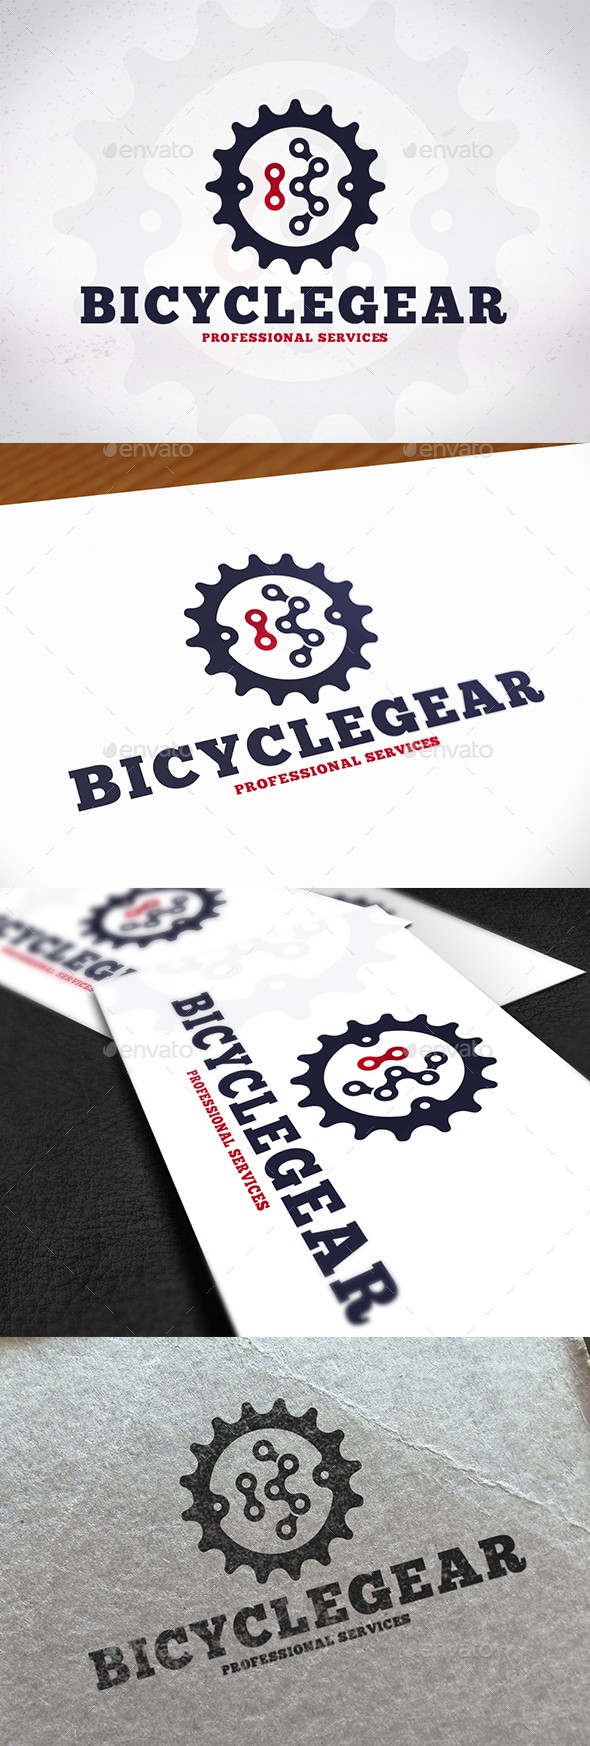 Bicycle Gear Logo Design - Letters Logo Templates